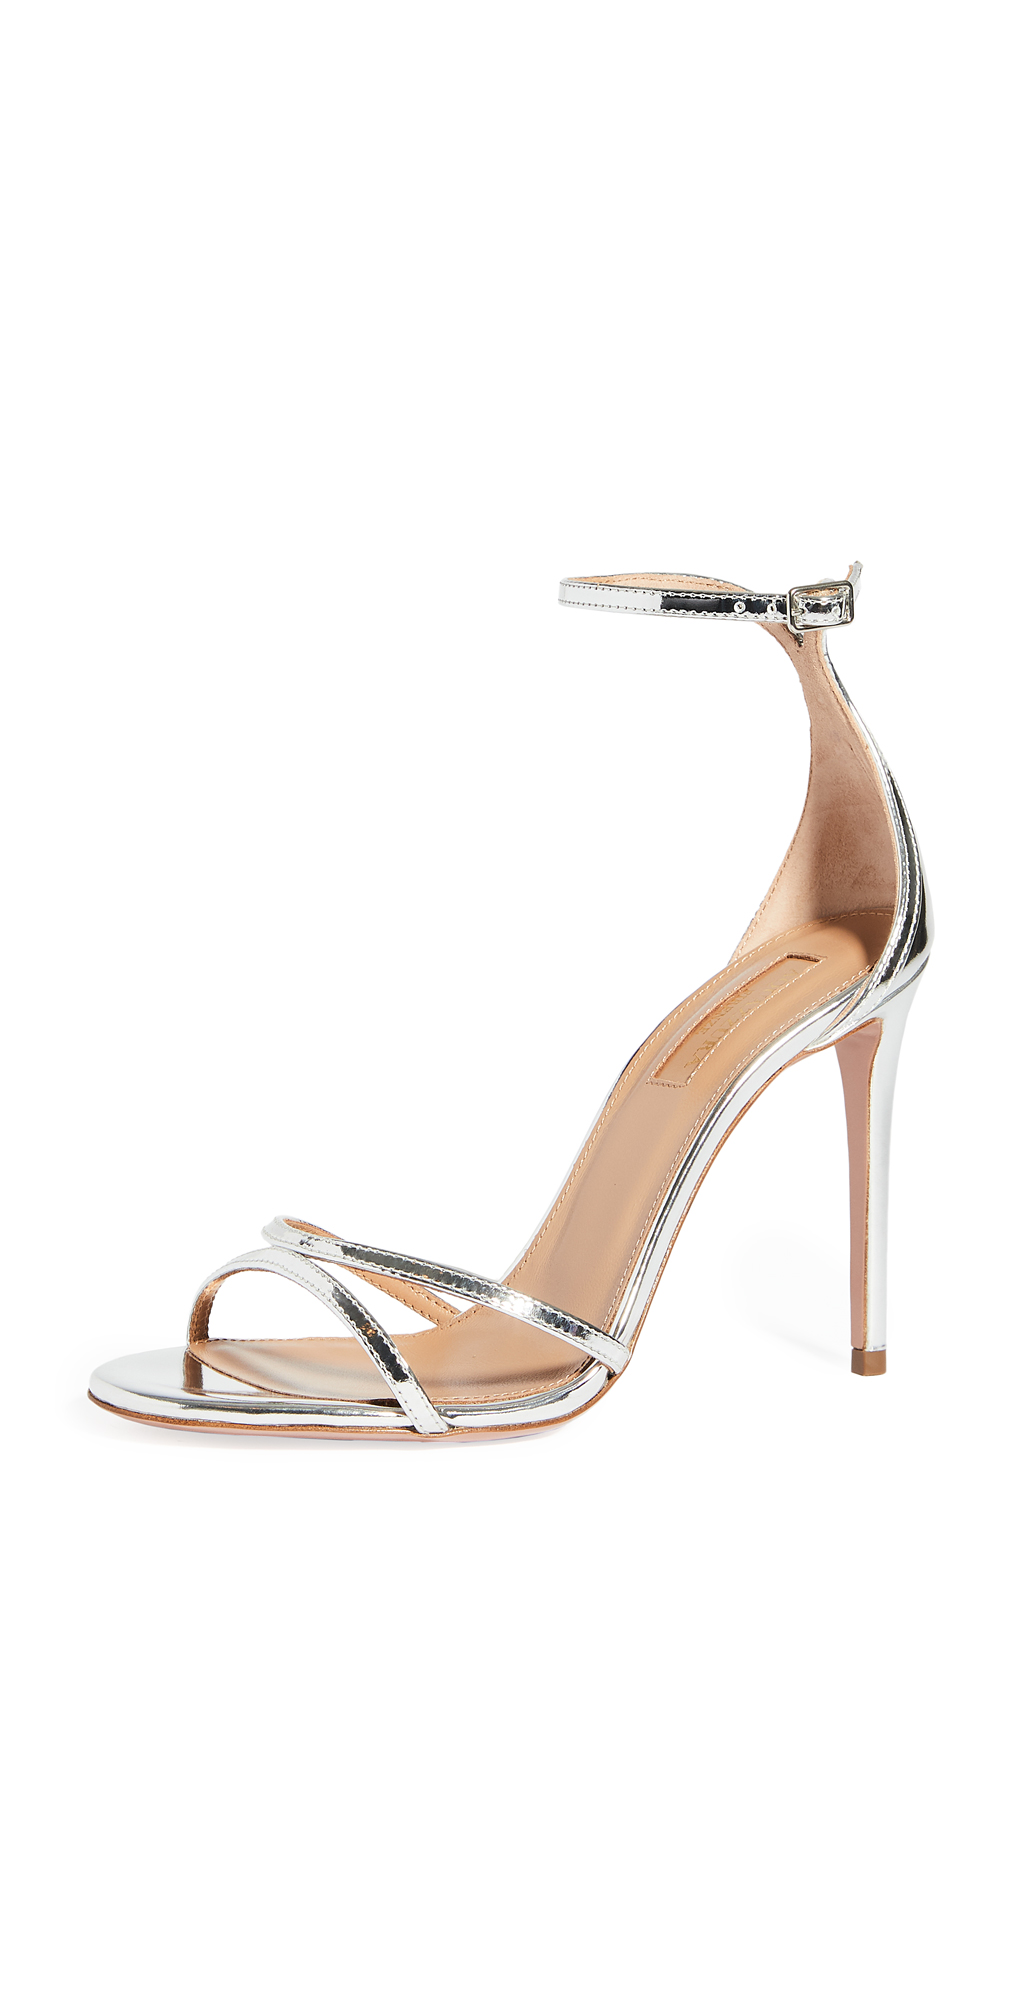 Aquazzura 105mm Purist Sandals